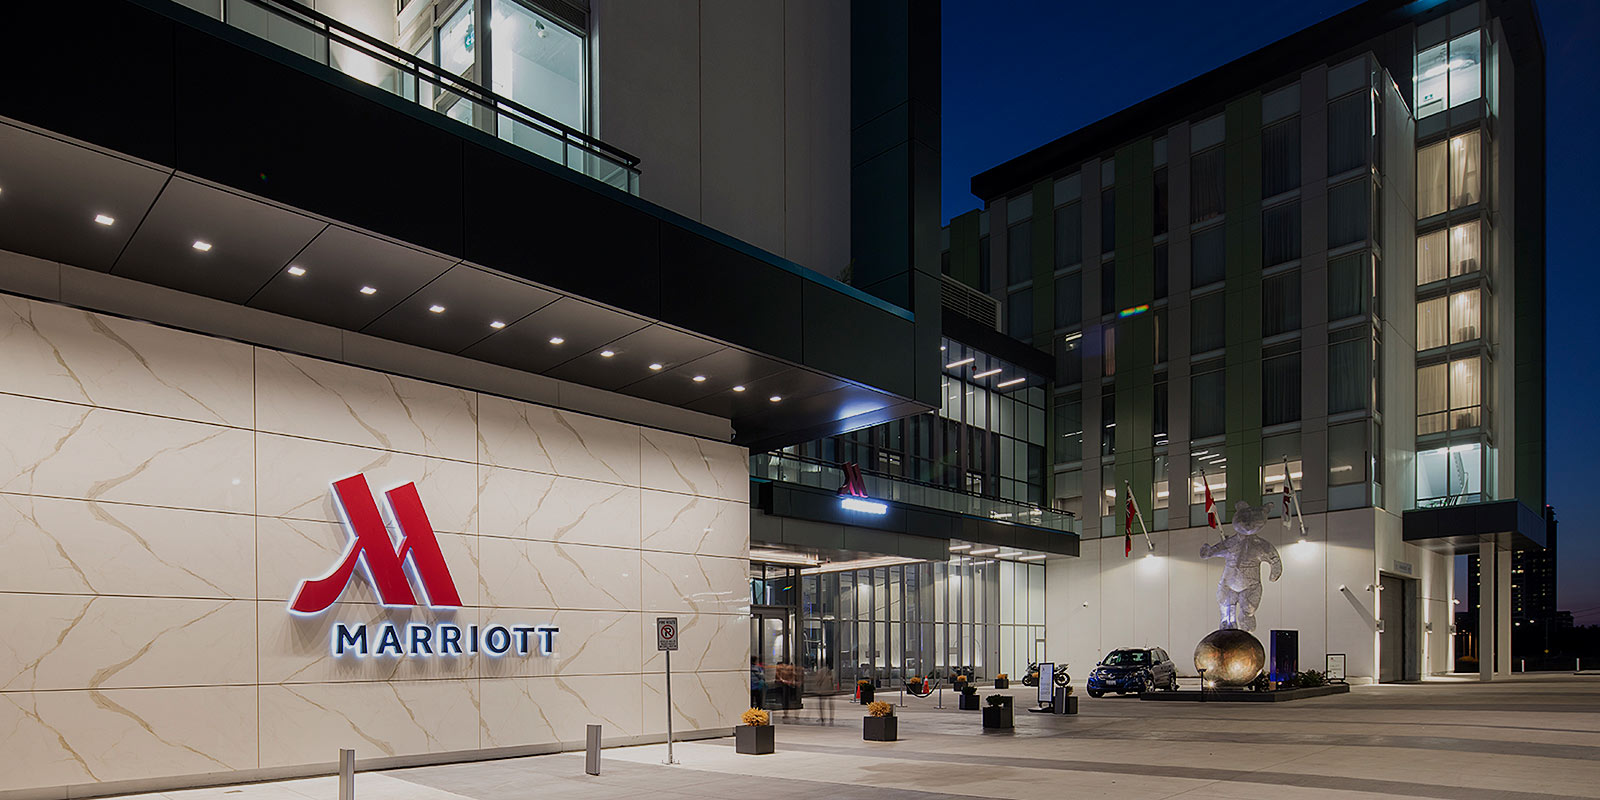 Toronto Marriott Markham Now Open!